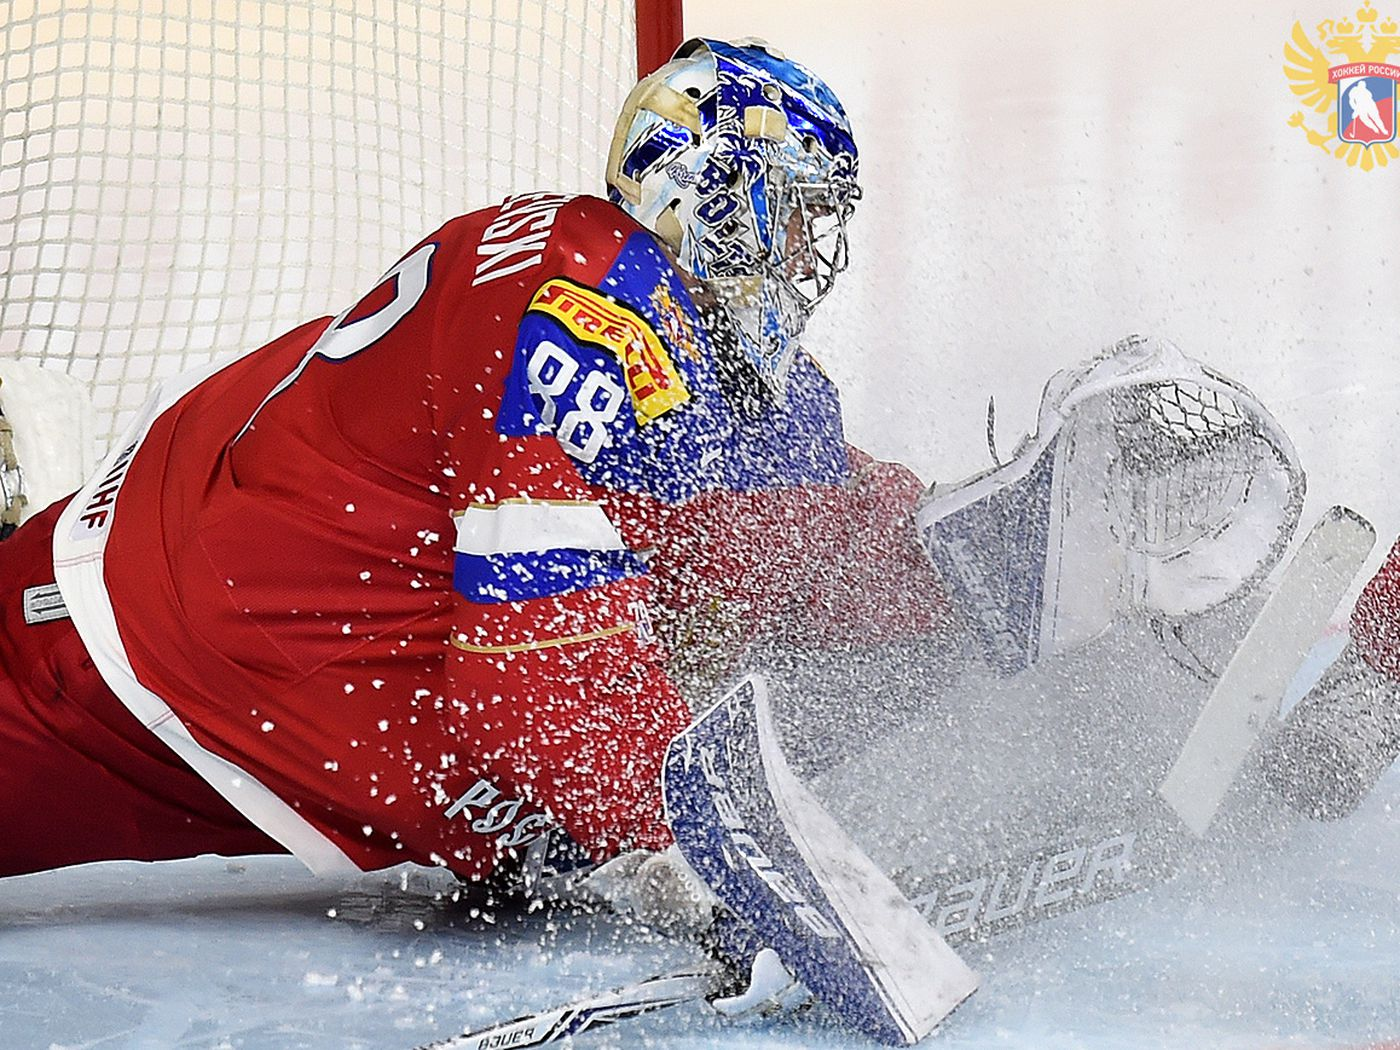 Quick Strikes  Vasilevskiy stops 22 shots to earn second consecutive  shutout for Russia - Raw Charge 641c749b7